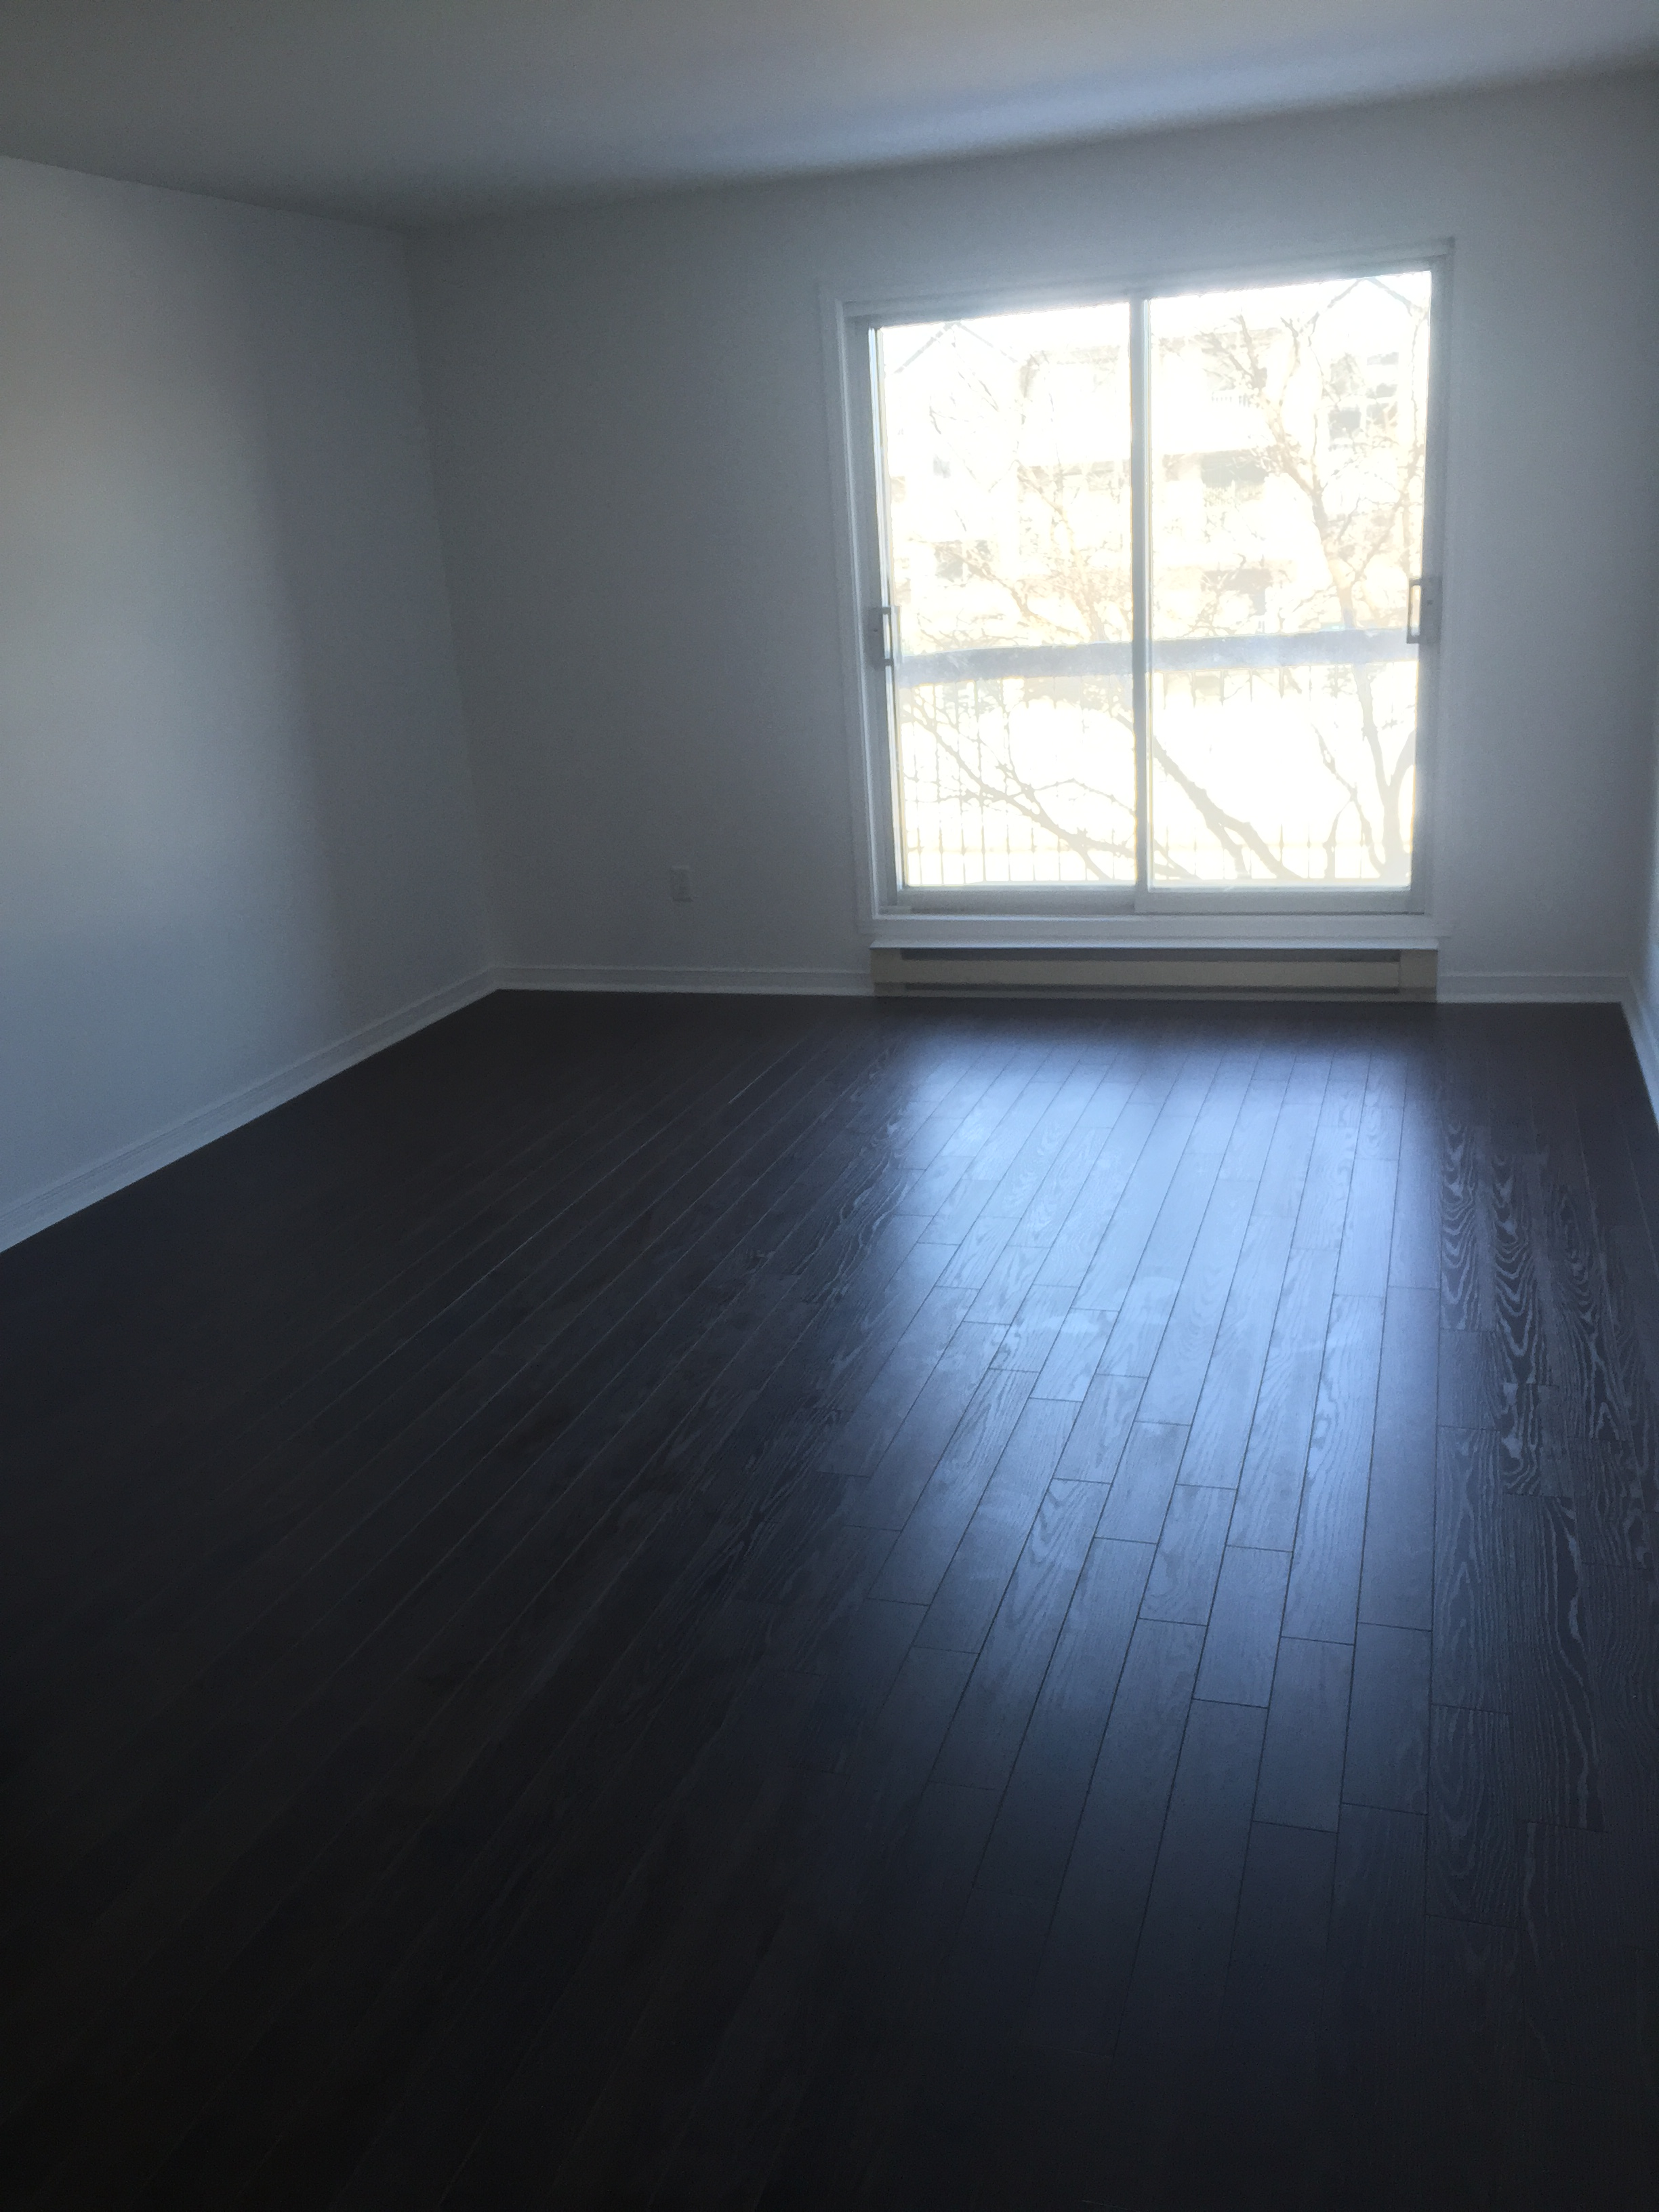 1 bedroom Apartments for rent in Pierrefonds-Roxboro at 18045-18125 Pierrefonds Boulevard - Photo 01 - RentersPages – L22166